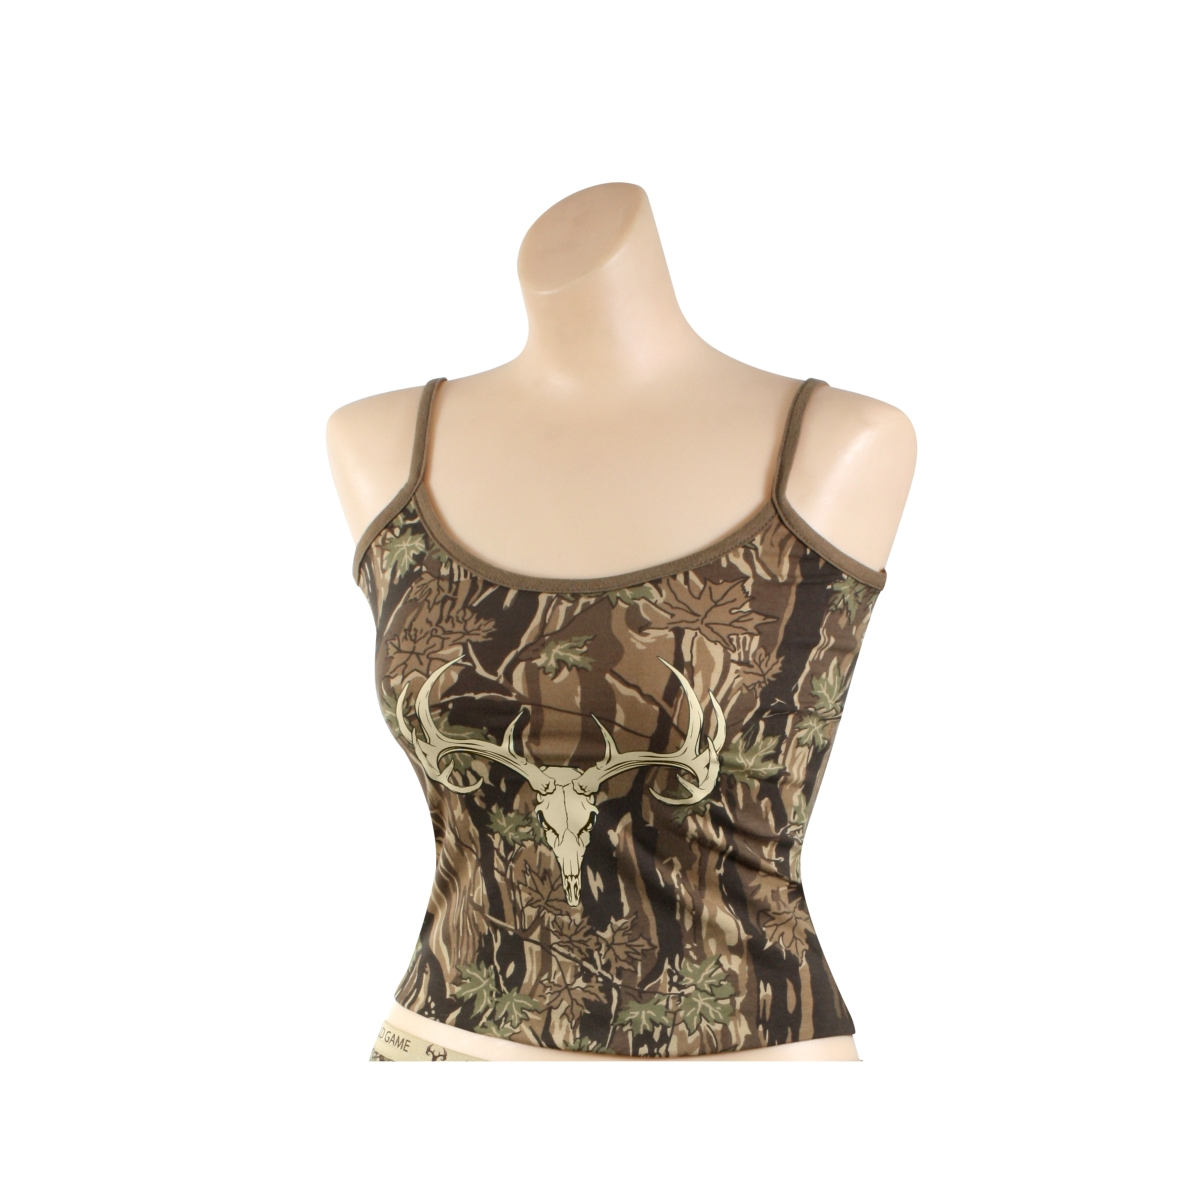 Rothco Womens Smokey Branch Tank Top, Camisole